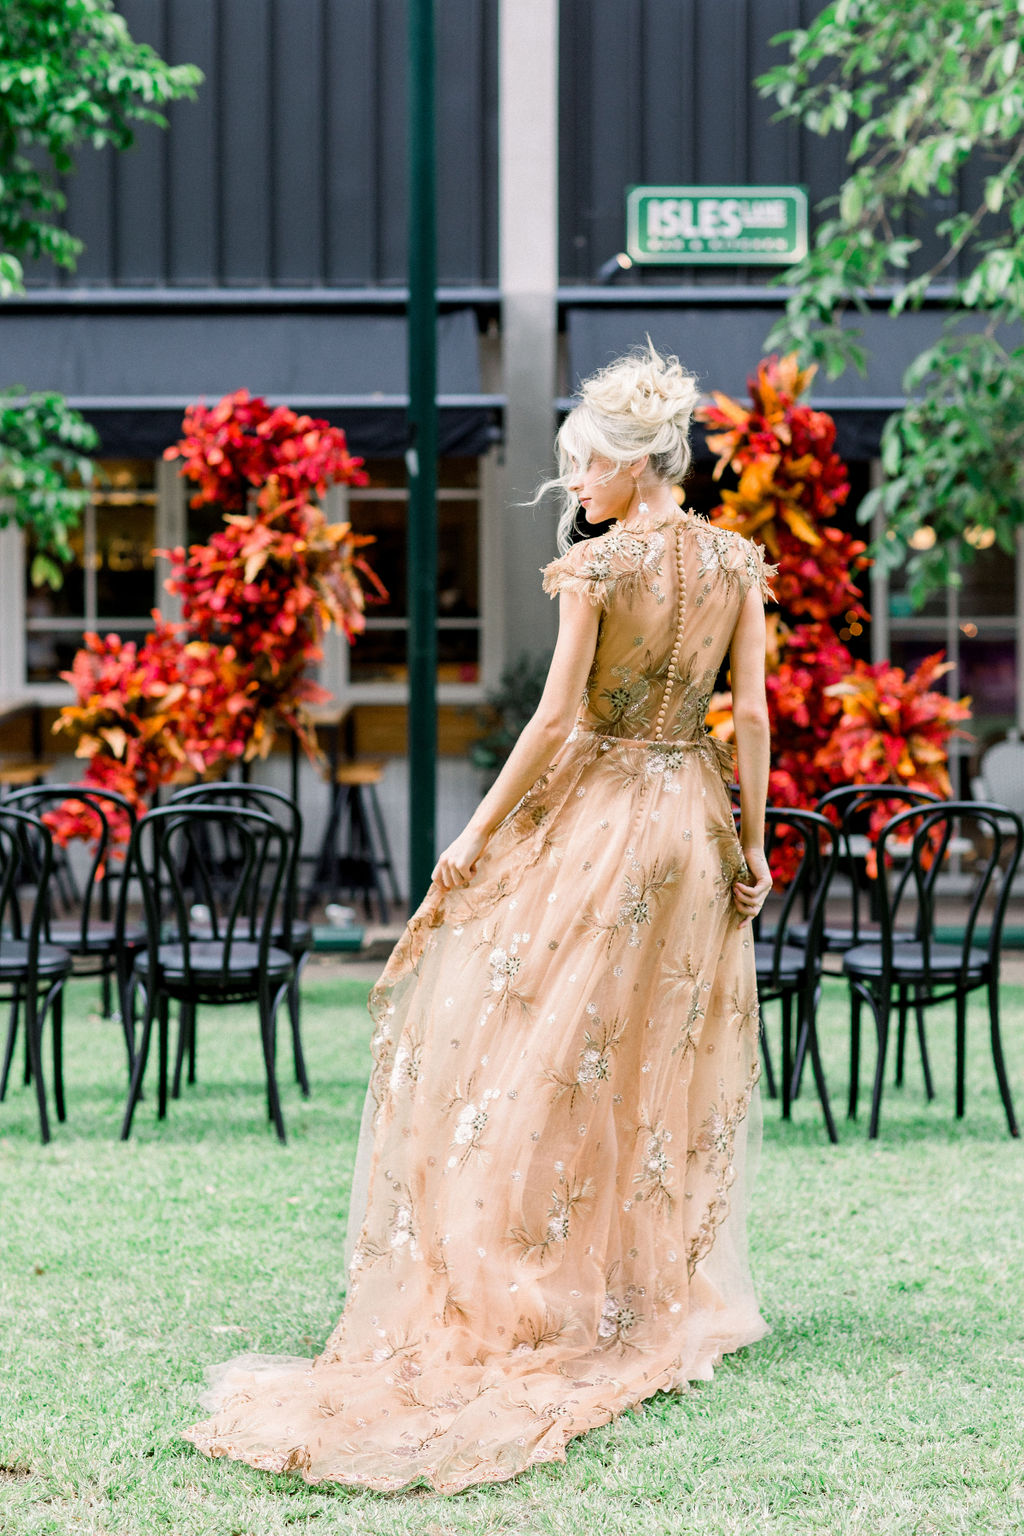 white+white weddings and events the wedding school styled shoot isles lane bride gold wedding dress outdoor ceremony bright florals